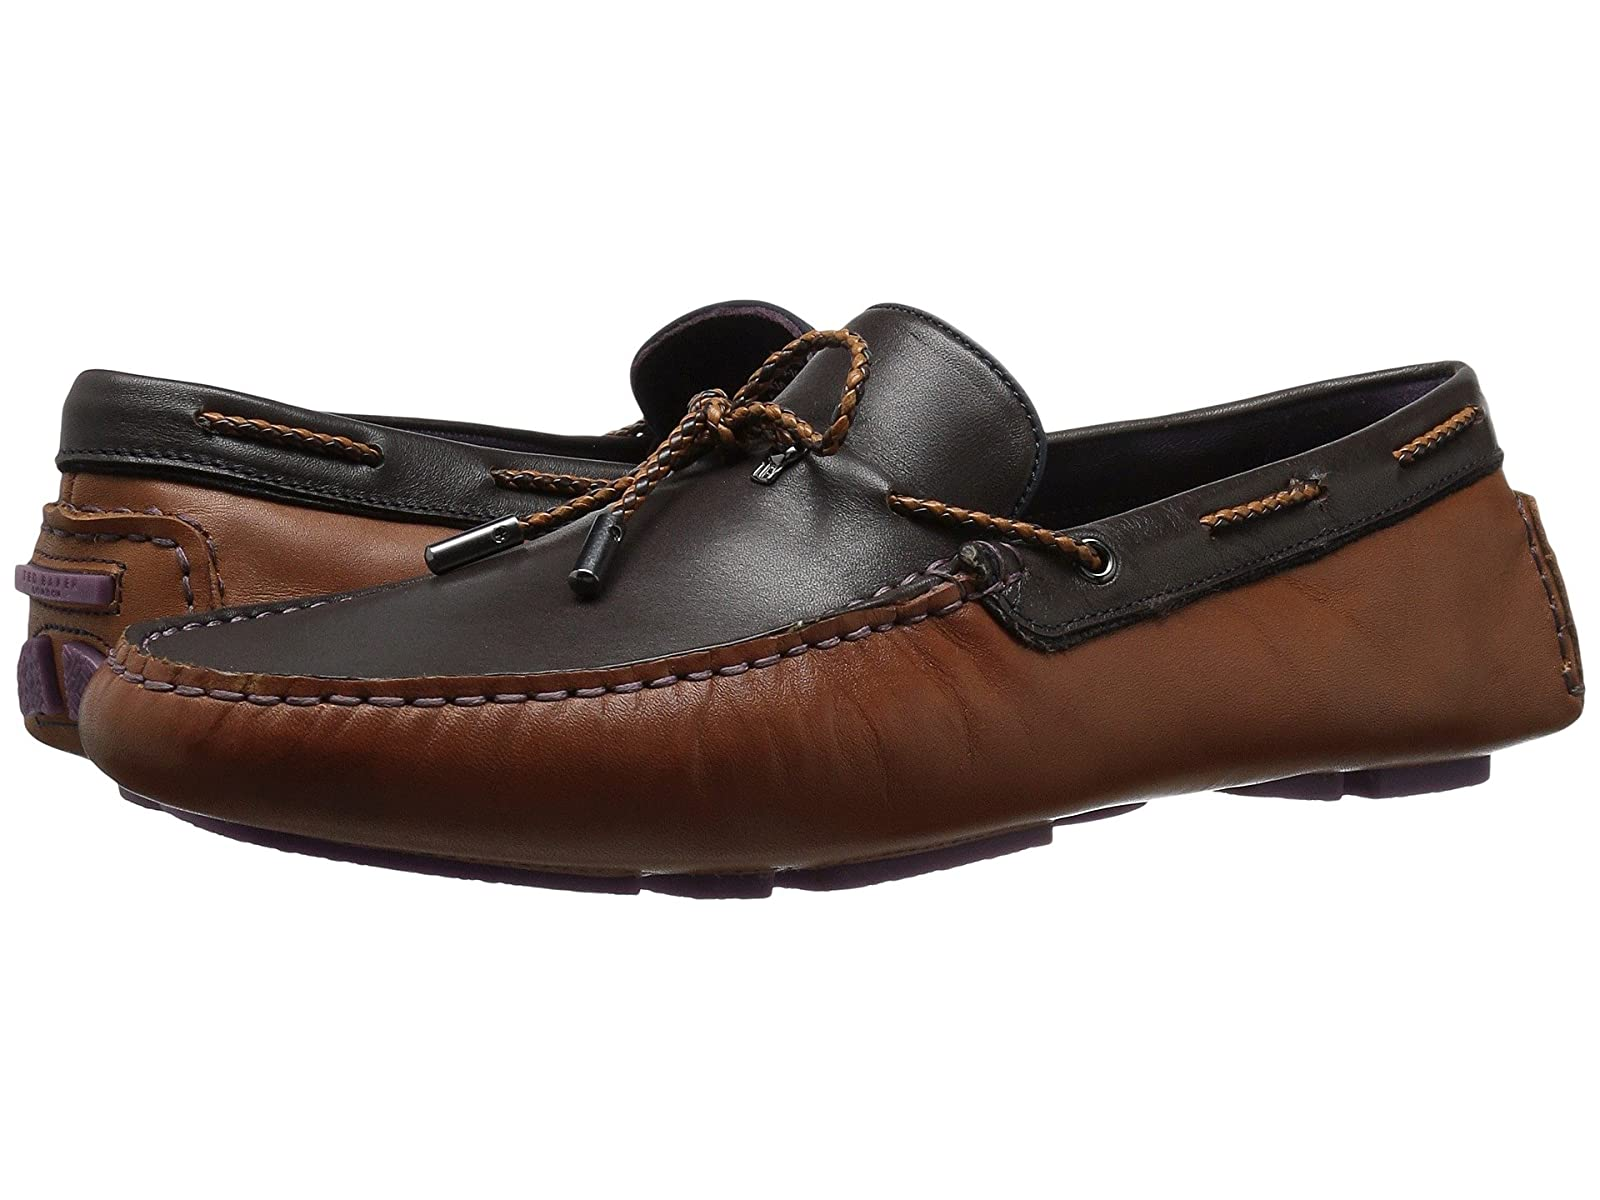 Ted Baker MelatoCheap and distinctive eye-catching shoes